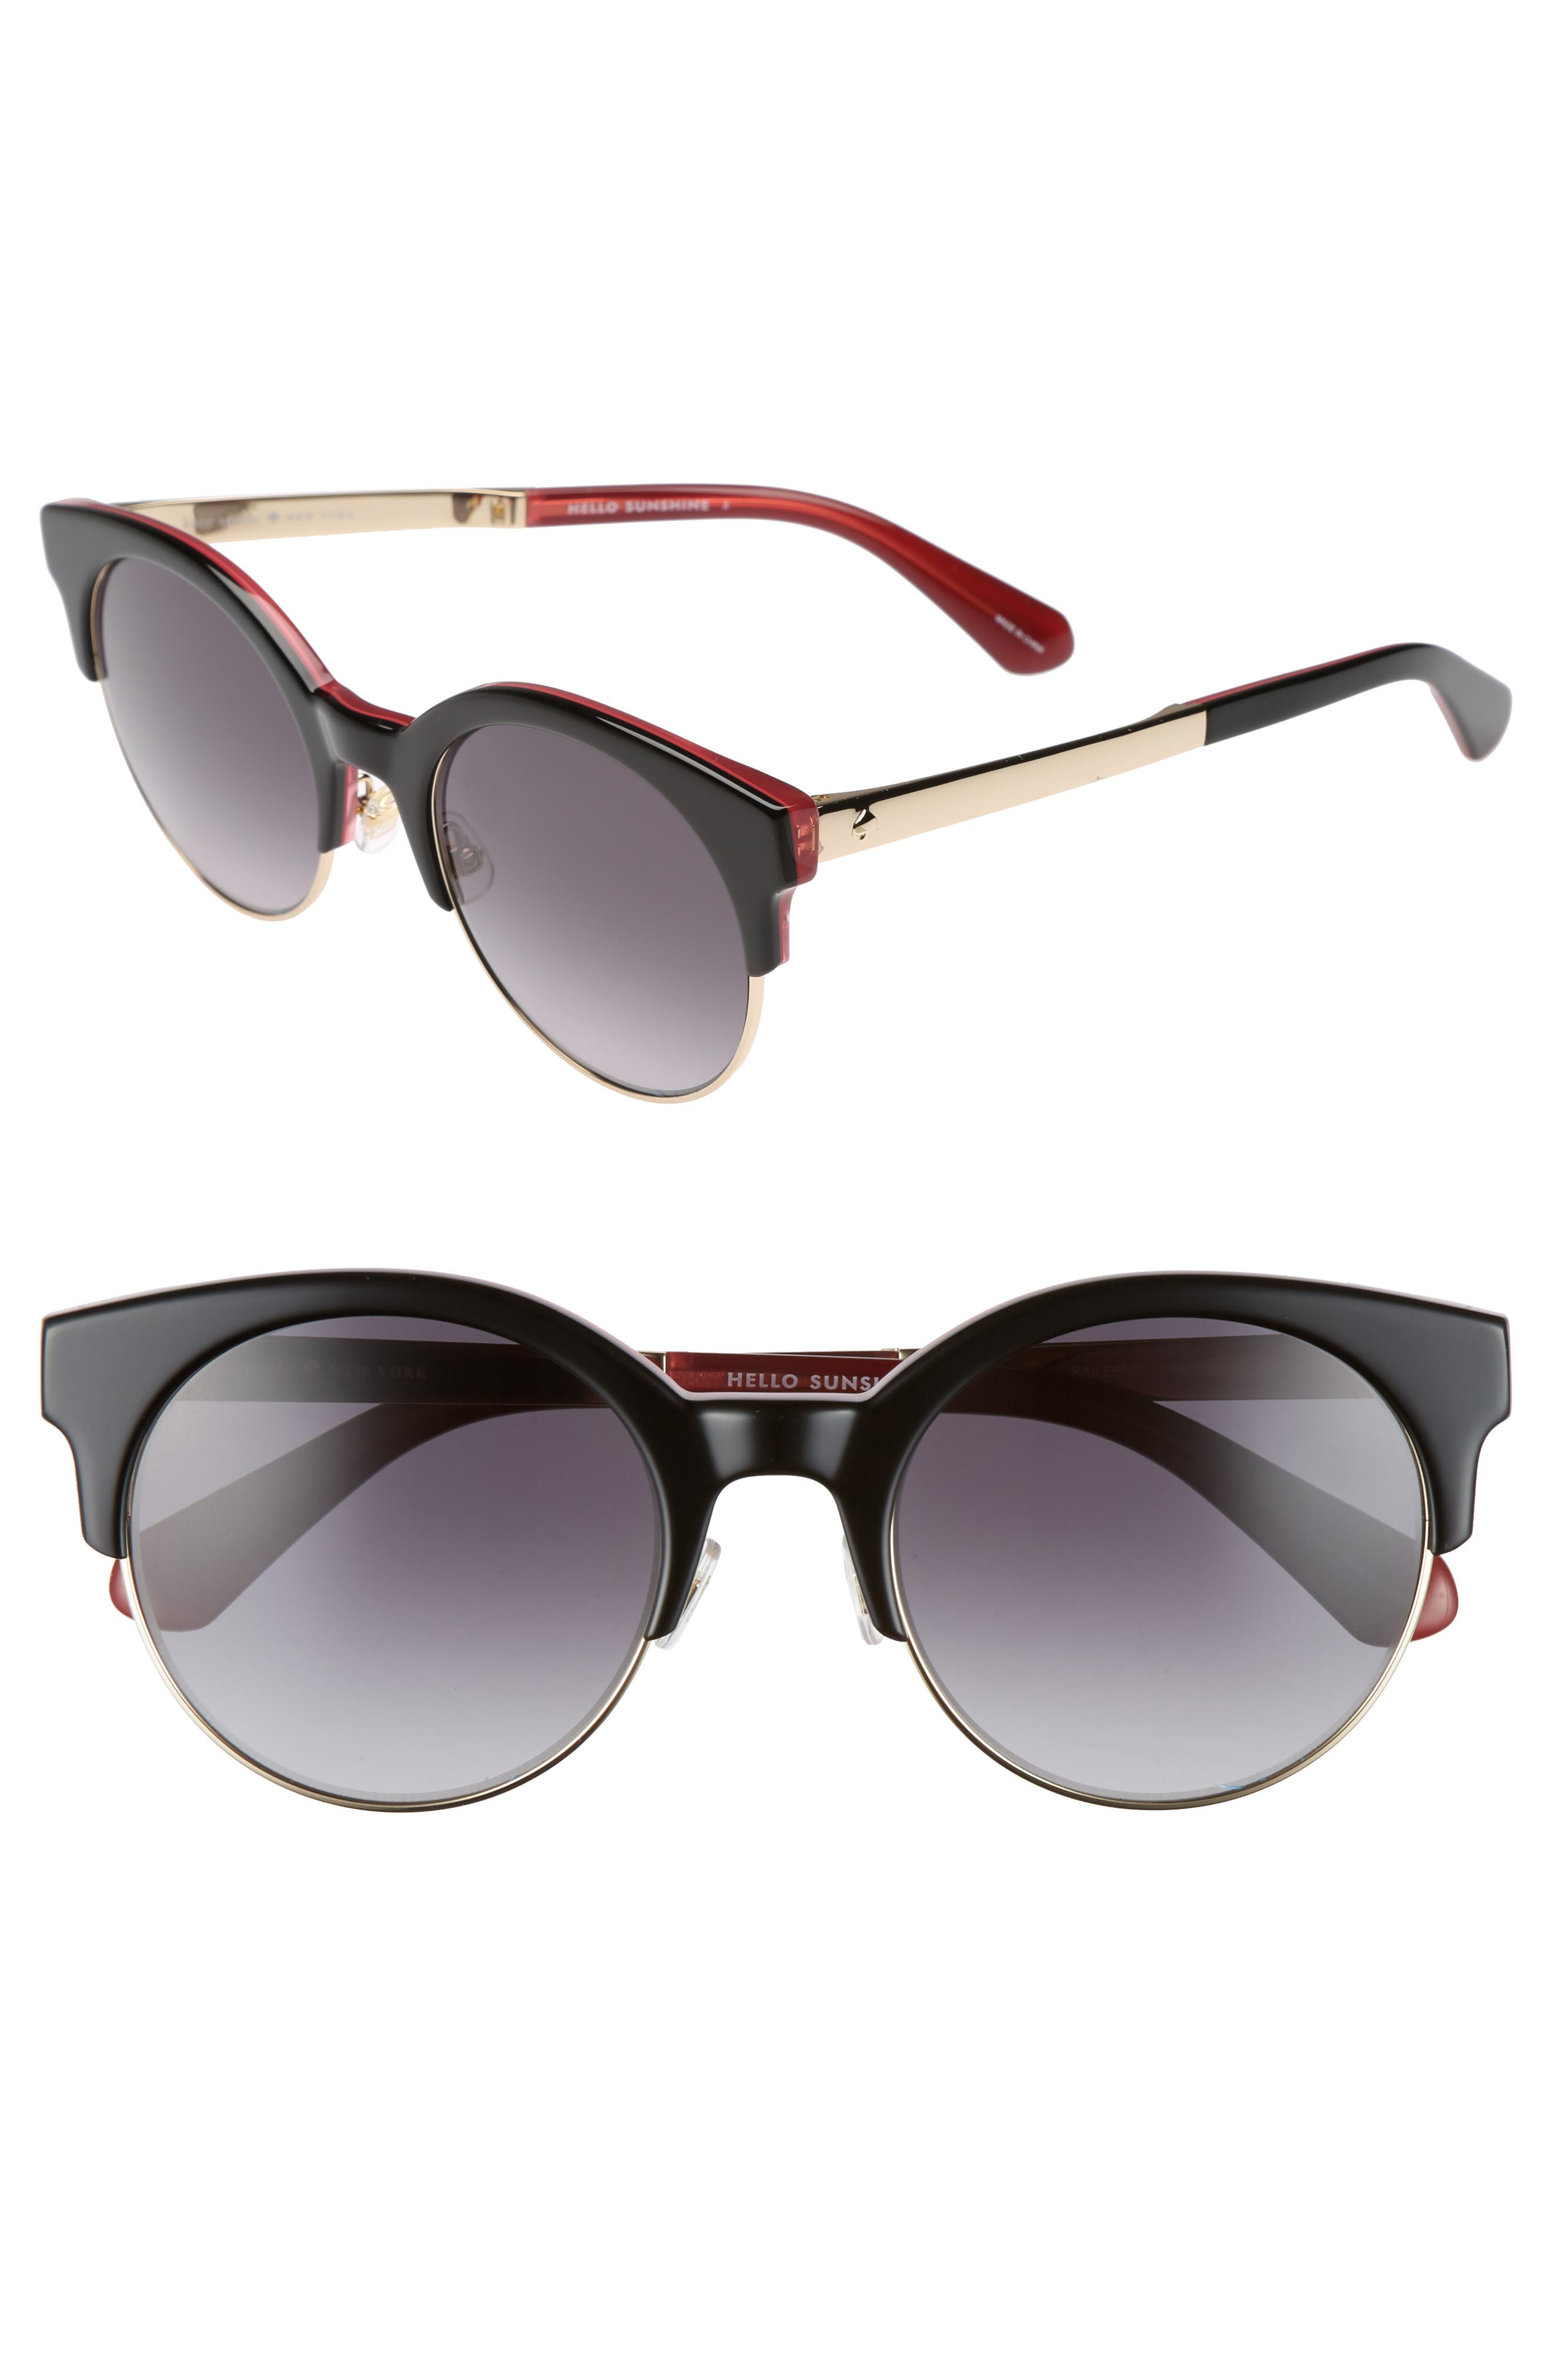 kate spade new york kaileen 52mm semi-rimless cat eye sunglasses